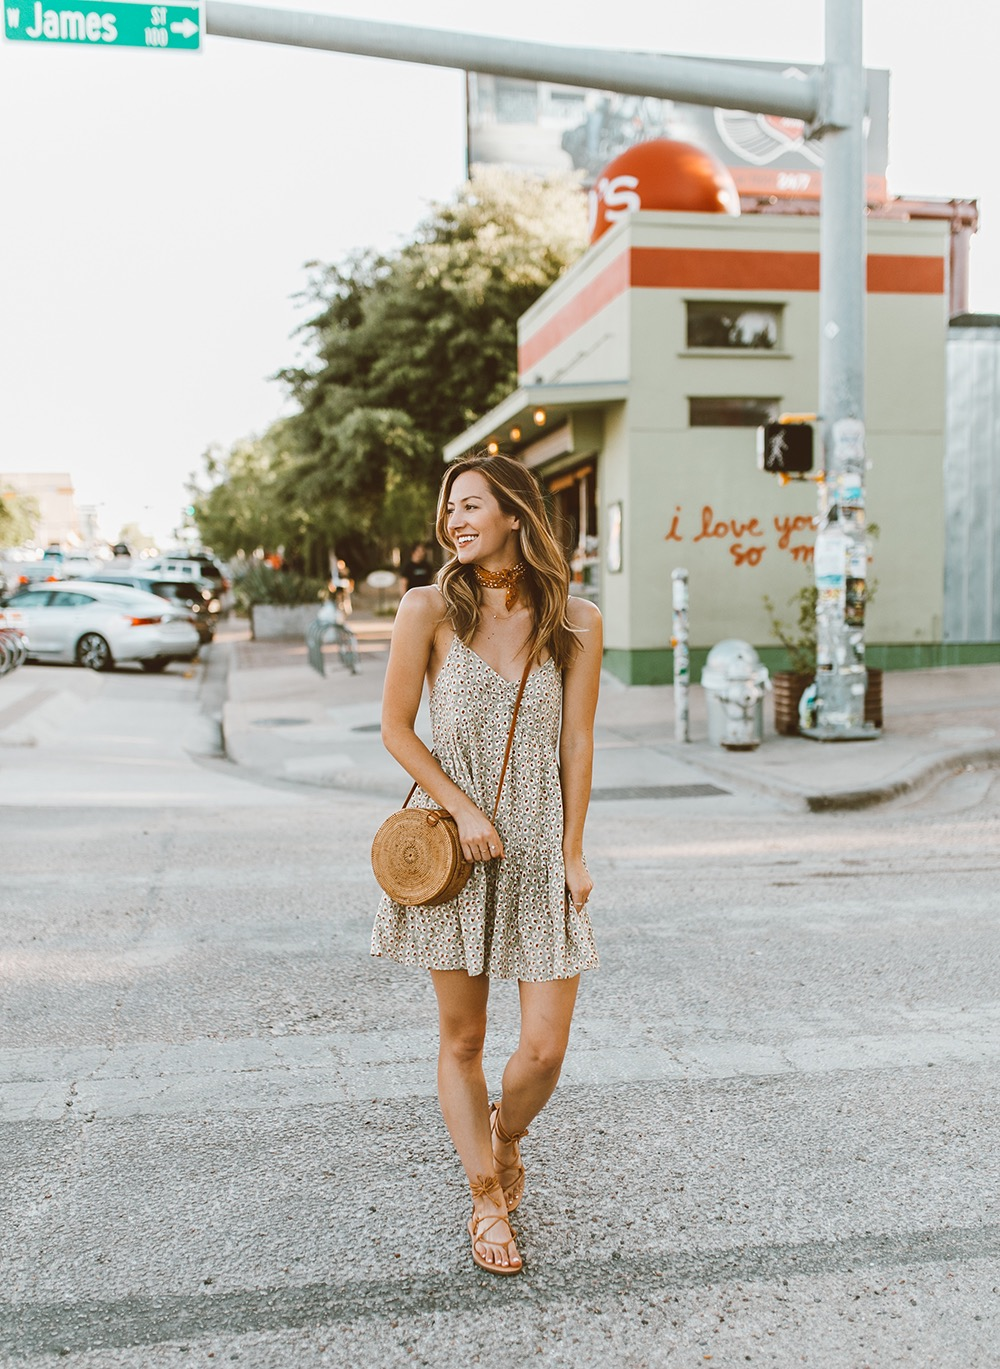 livvyland-blog-olivia-watson-south-congress-i-love-you-so-much-mural-urban-outfitters-harper-babydoll-floral-tie-back-dress-bandana-neck-6